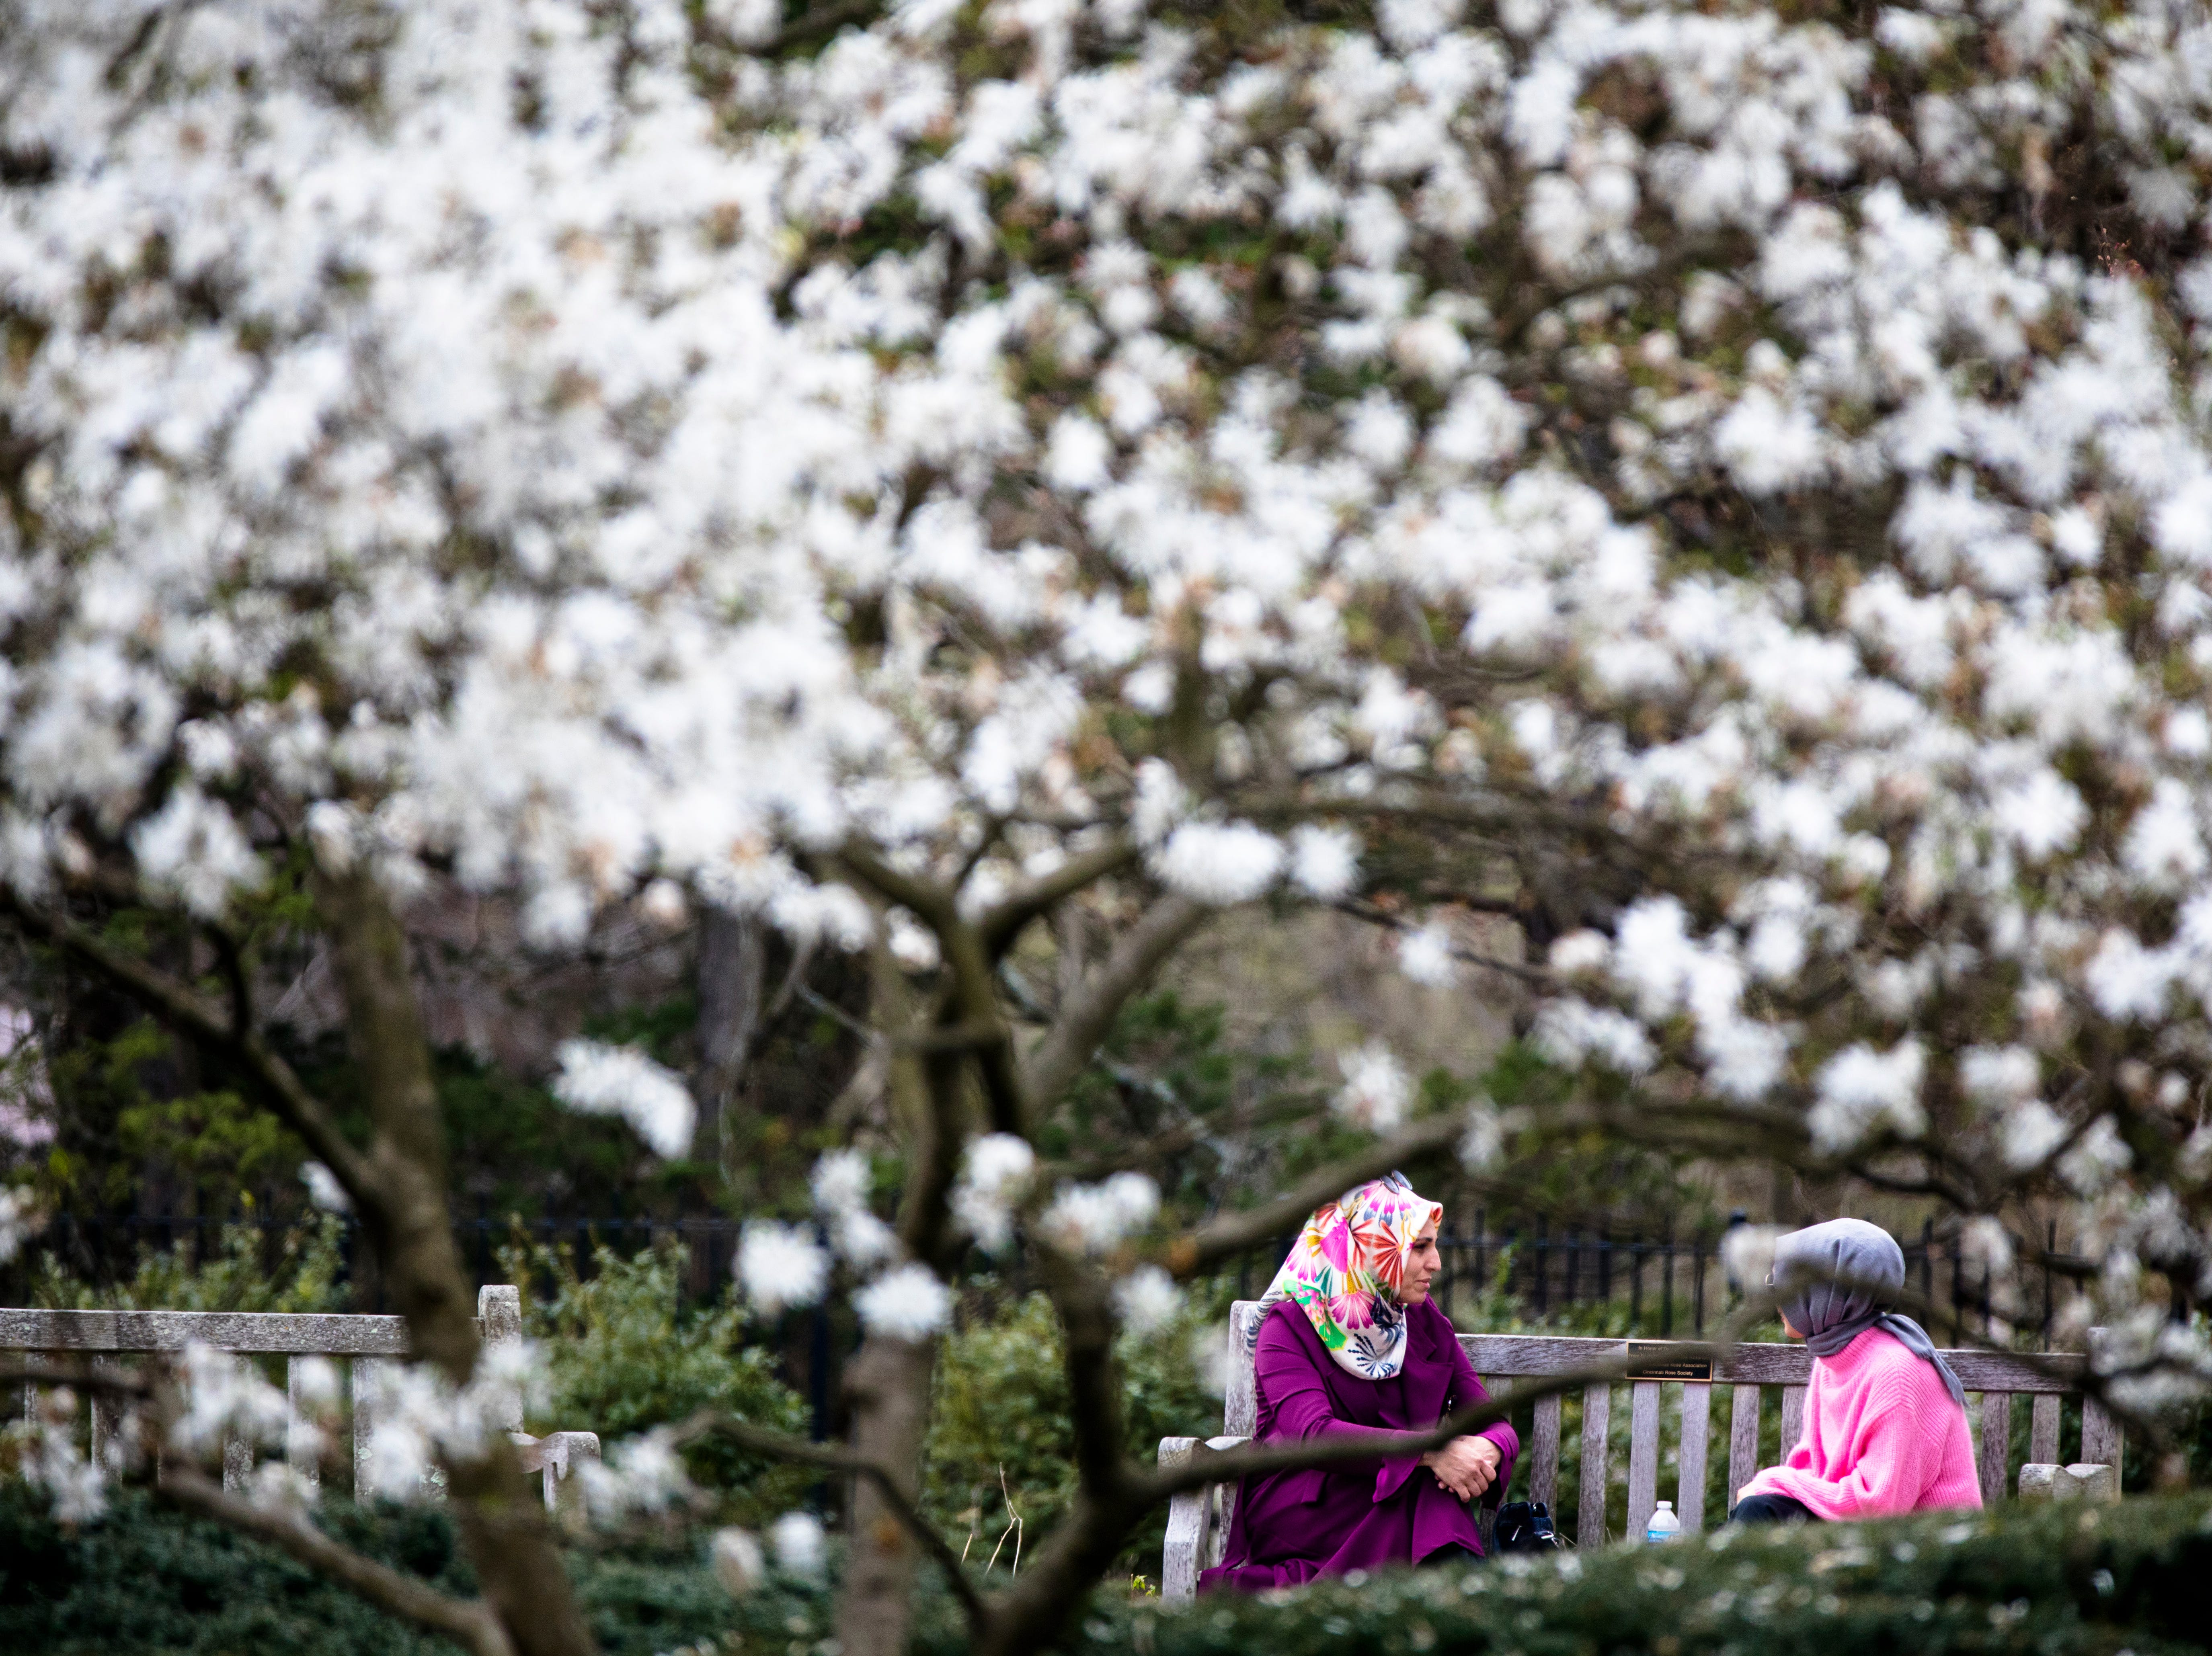 Ayse Gonen talks to Nesibe Karatas near blooming Star Magnolia trees at Ault Park in Hyde Park on Wednesday, April 10, 2019.